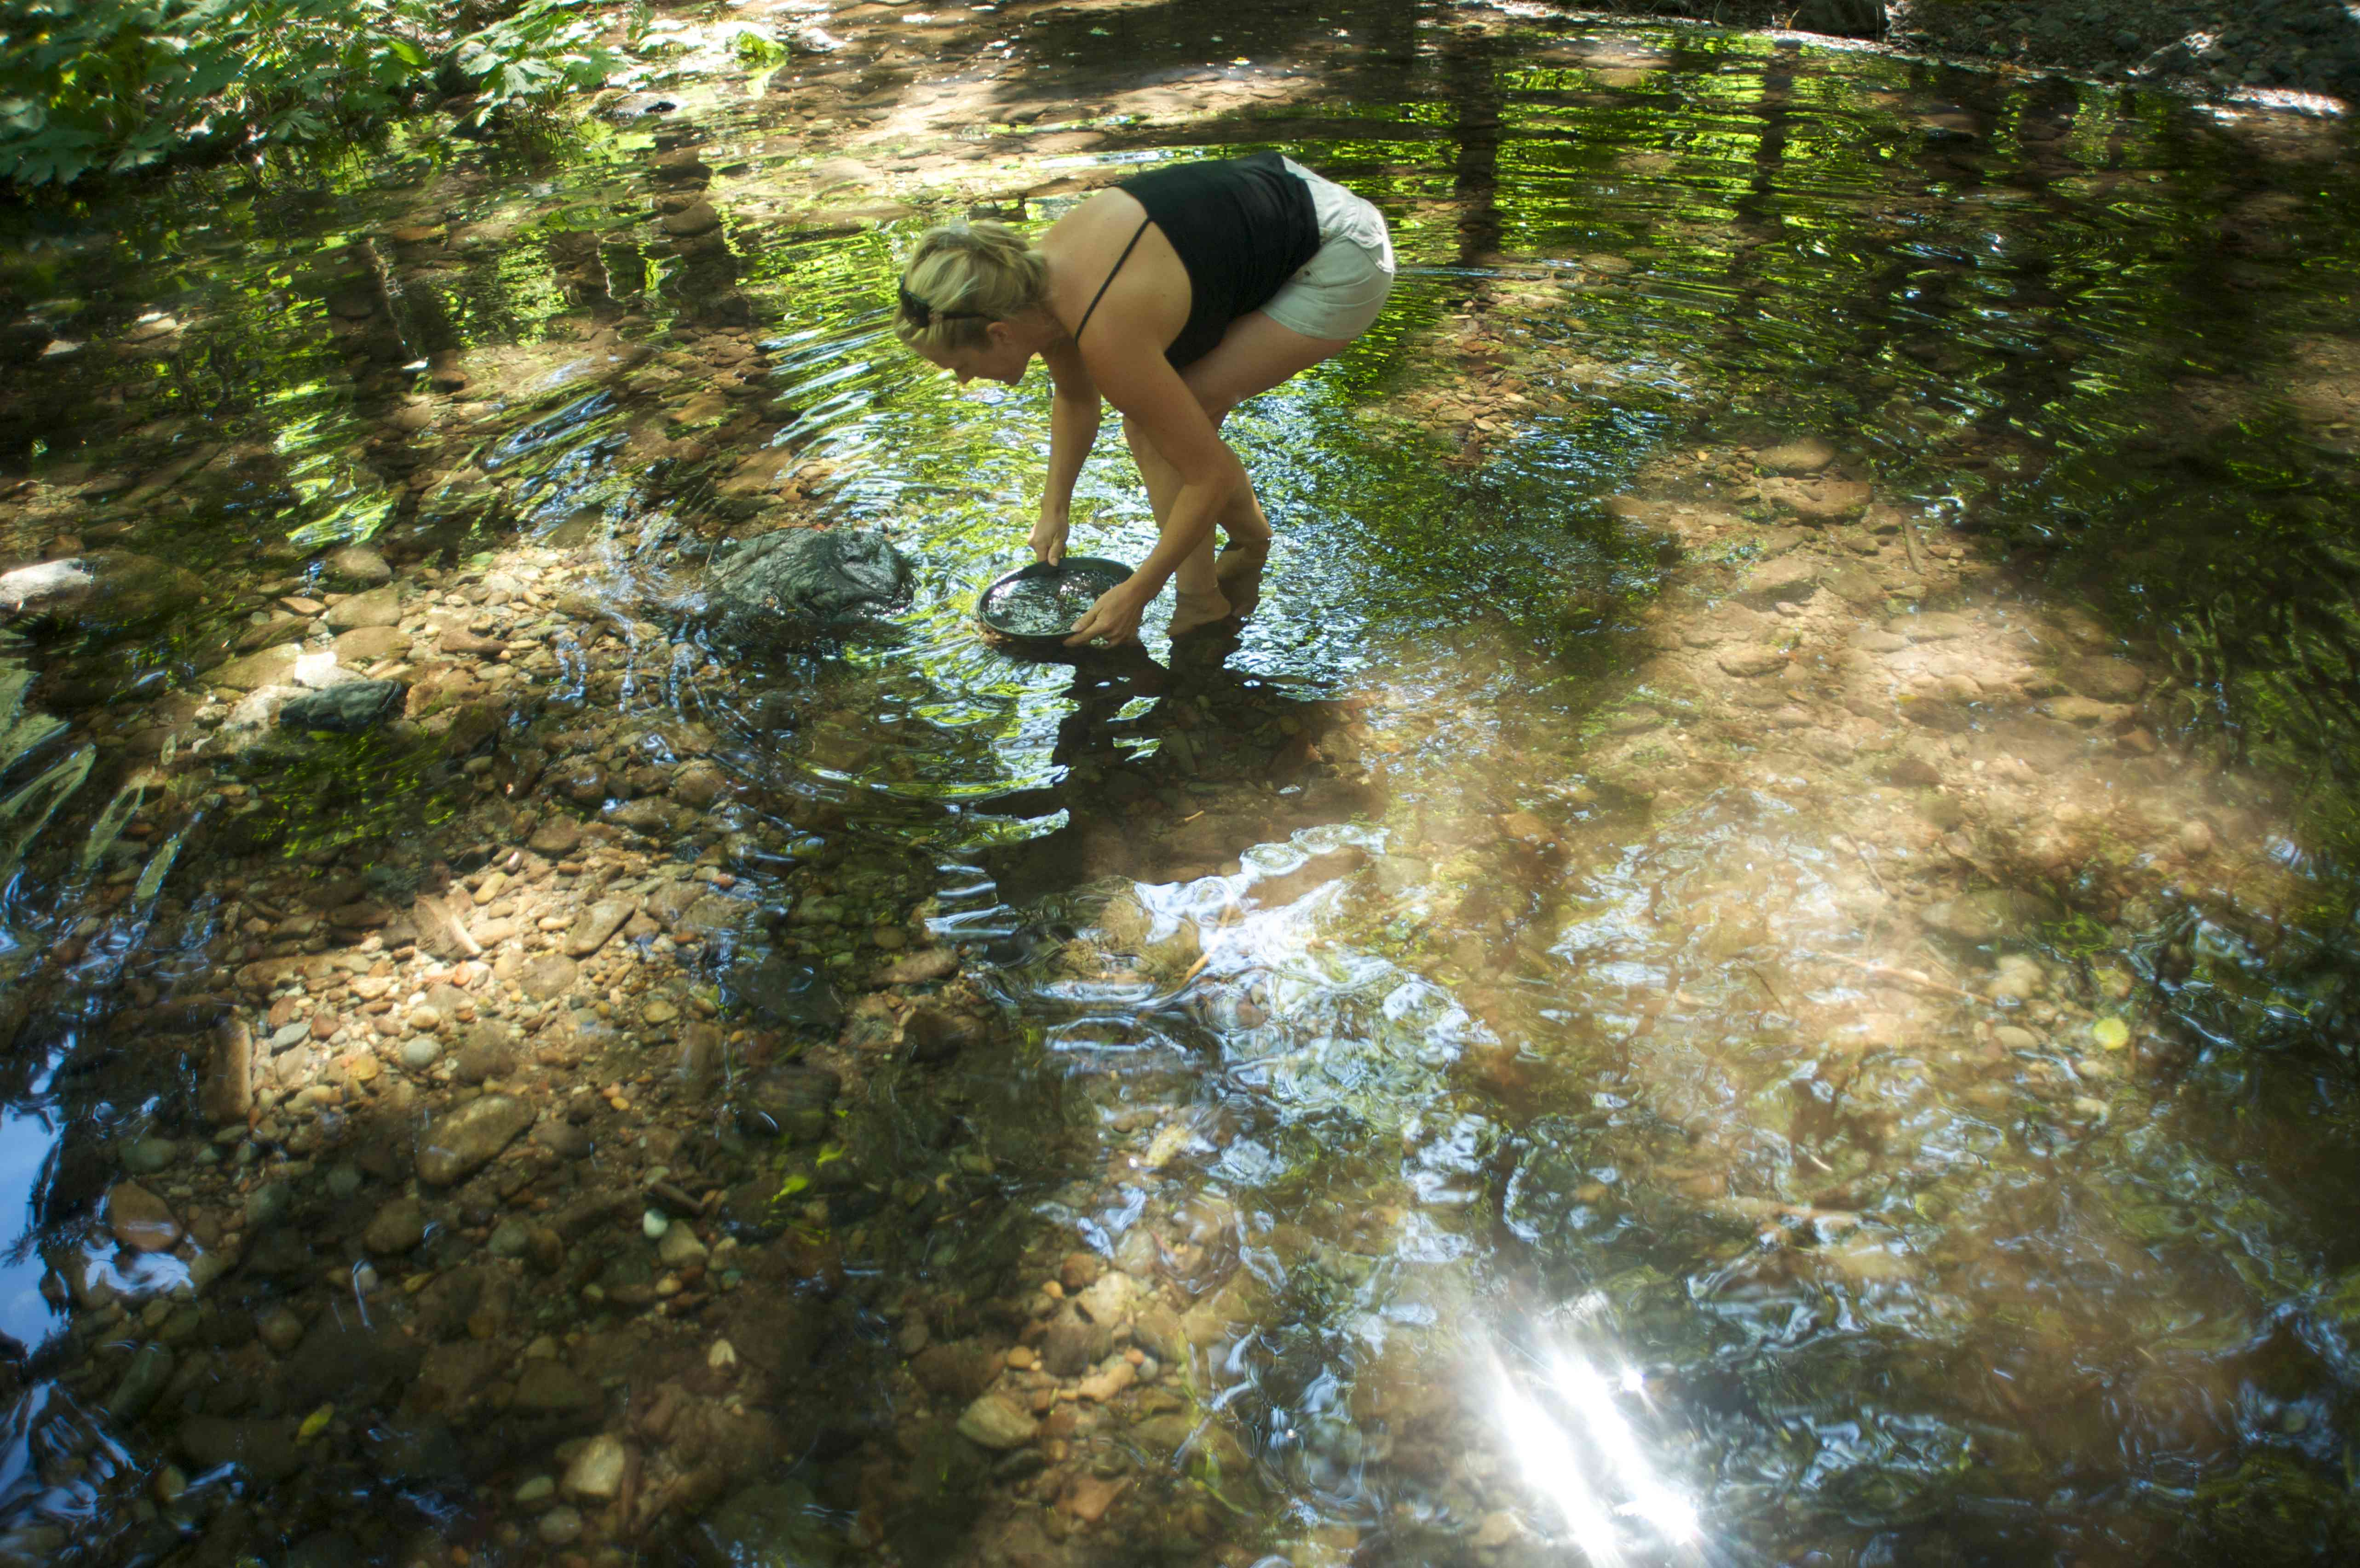 woman bending over in shallow water holding a pan